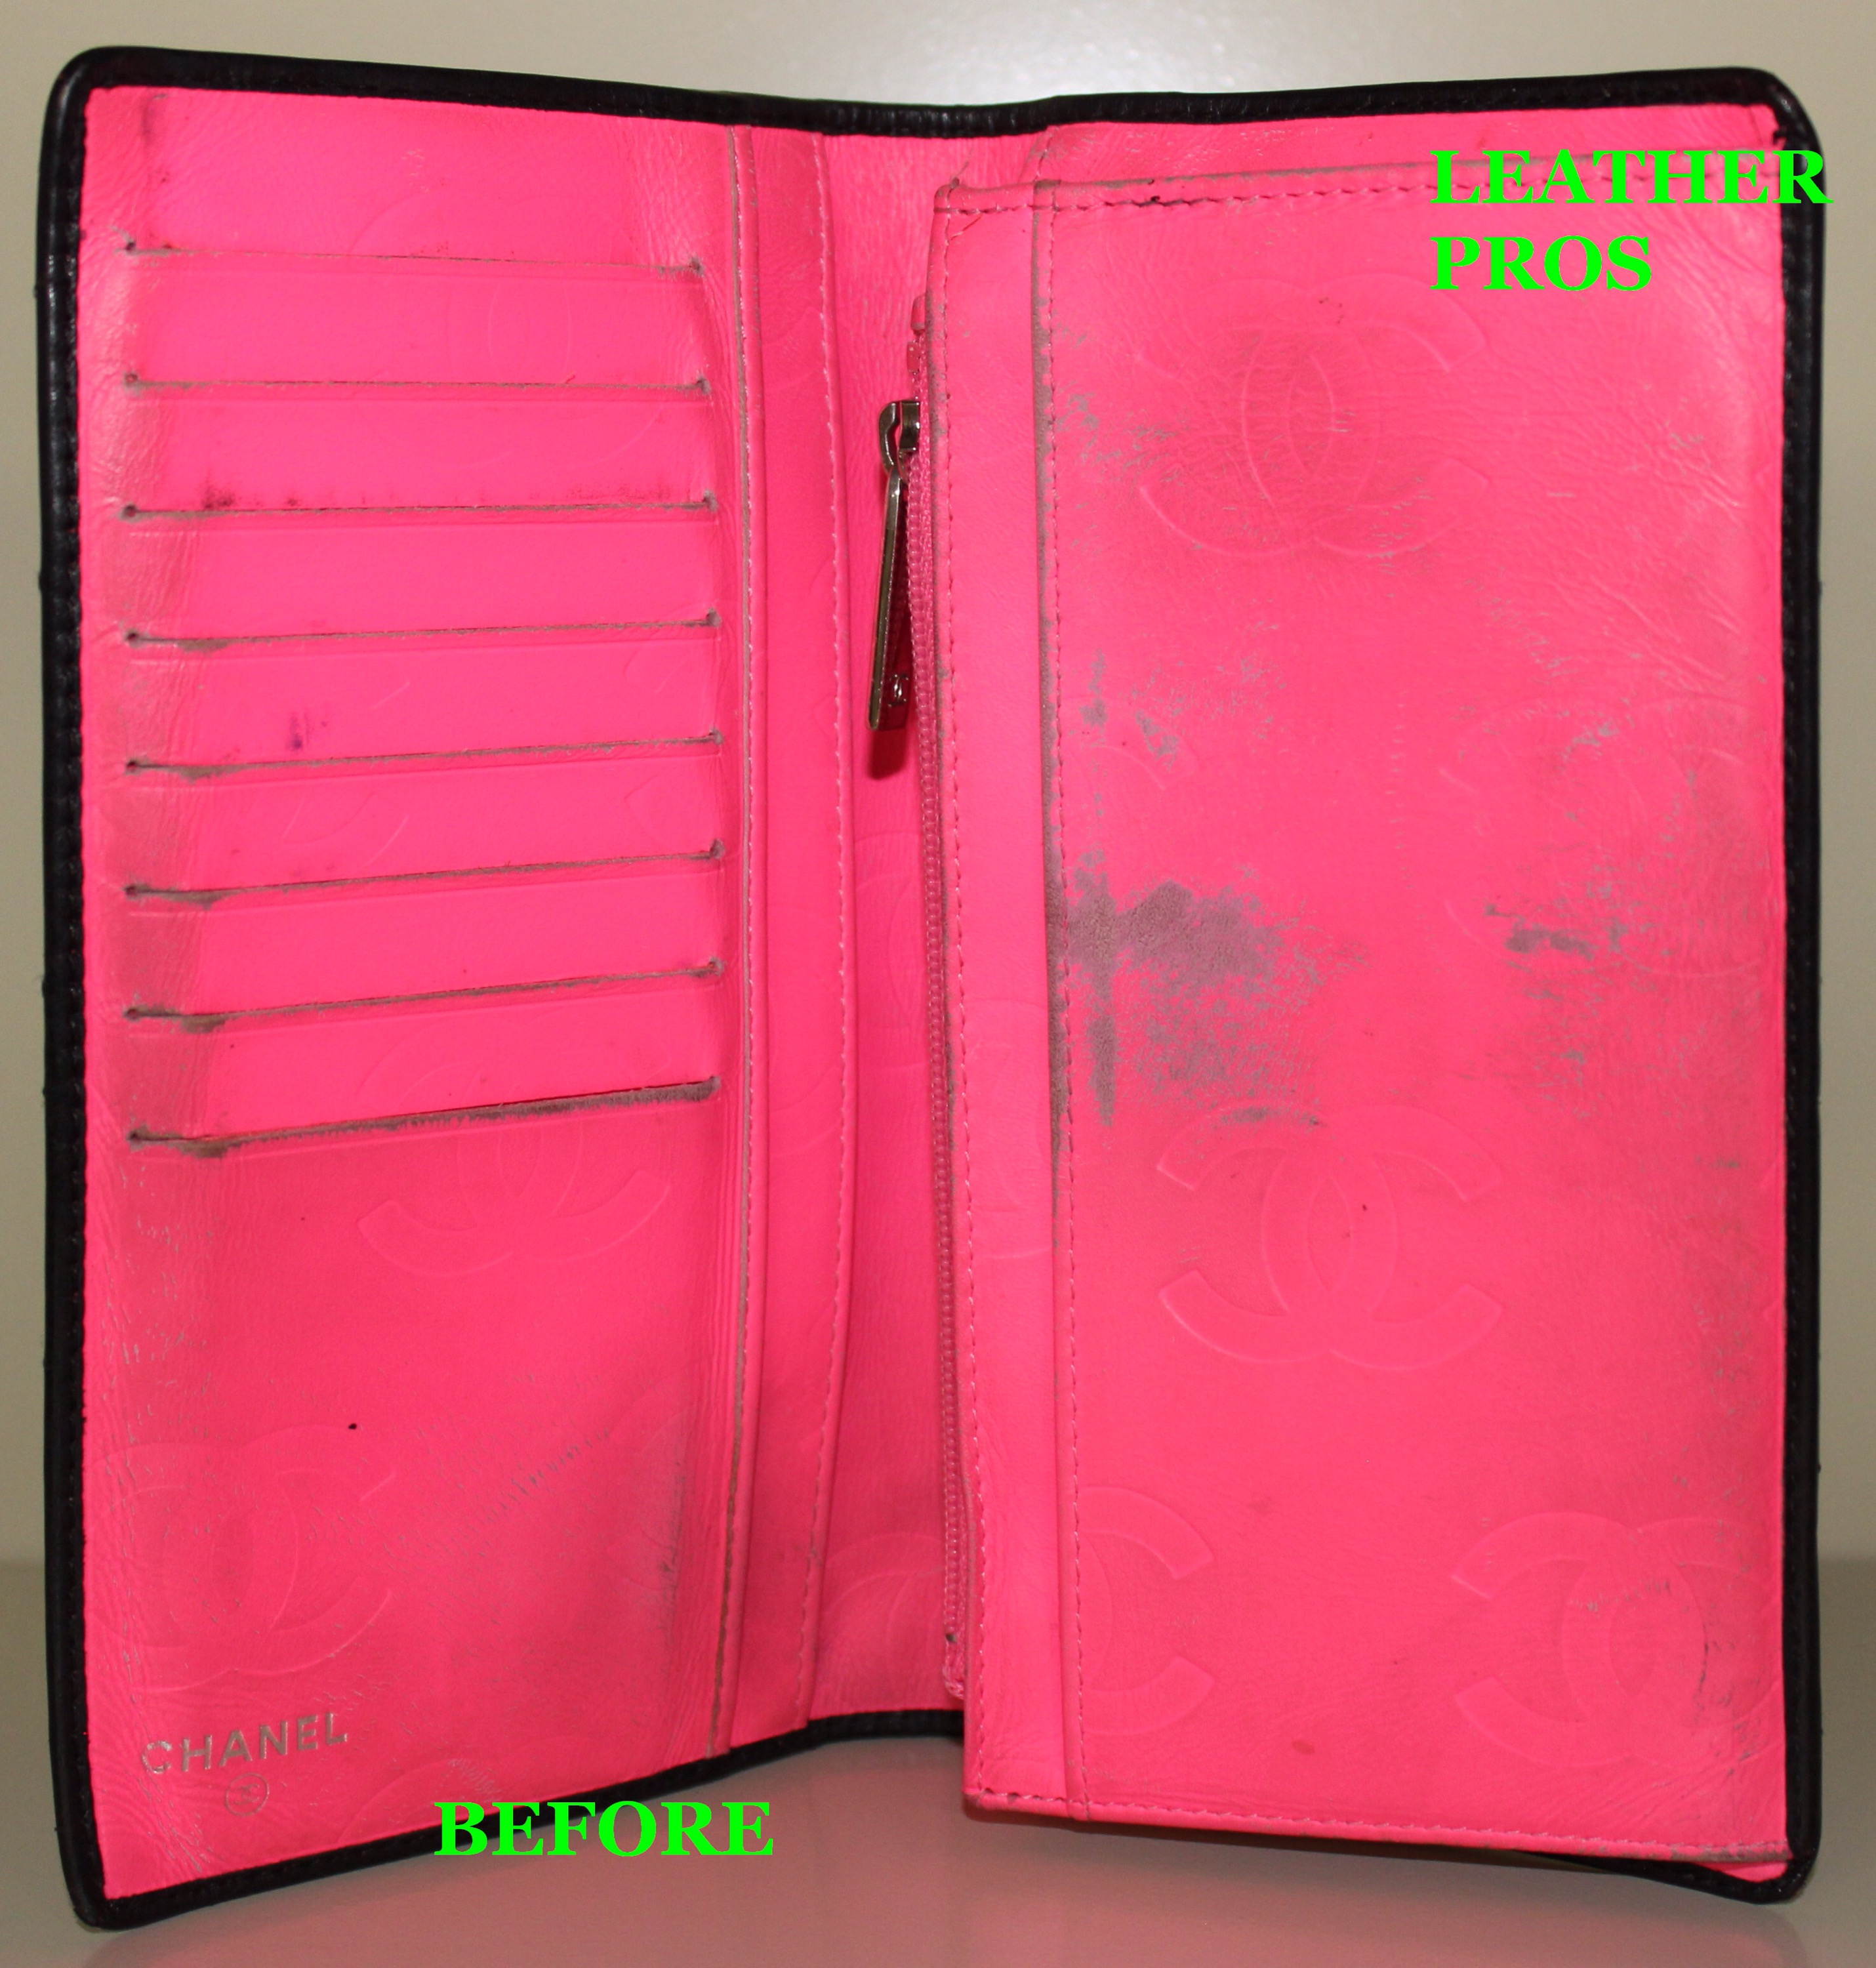 06aa84cb499 Refinishing interior hot pink color of a Chanel Cambon Wallet ...